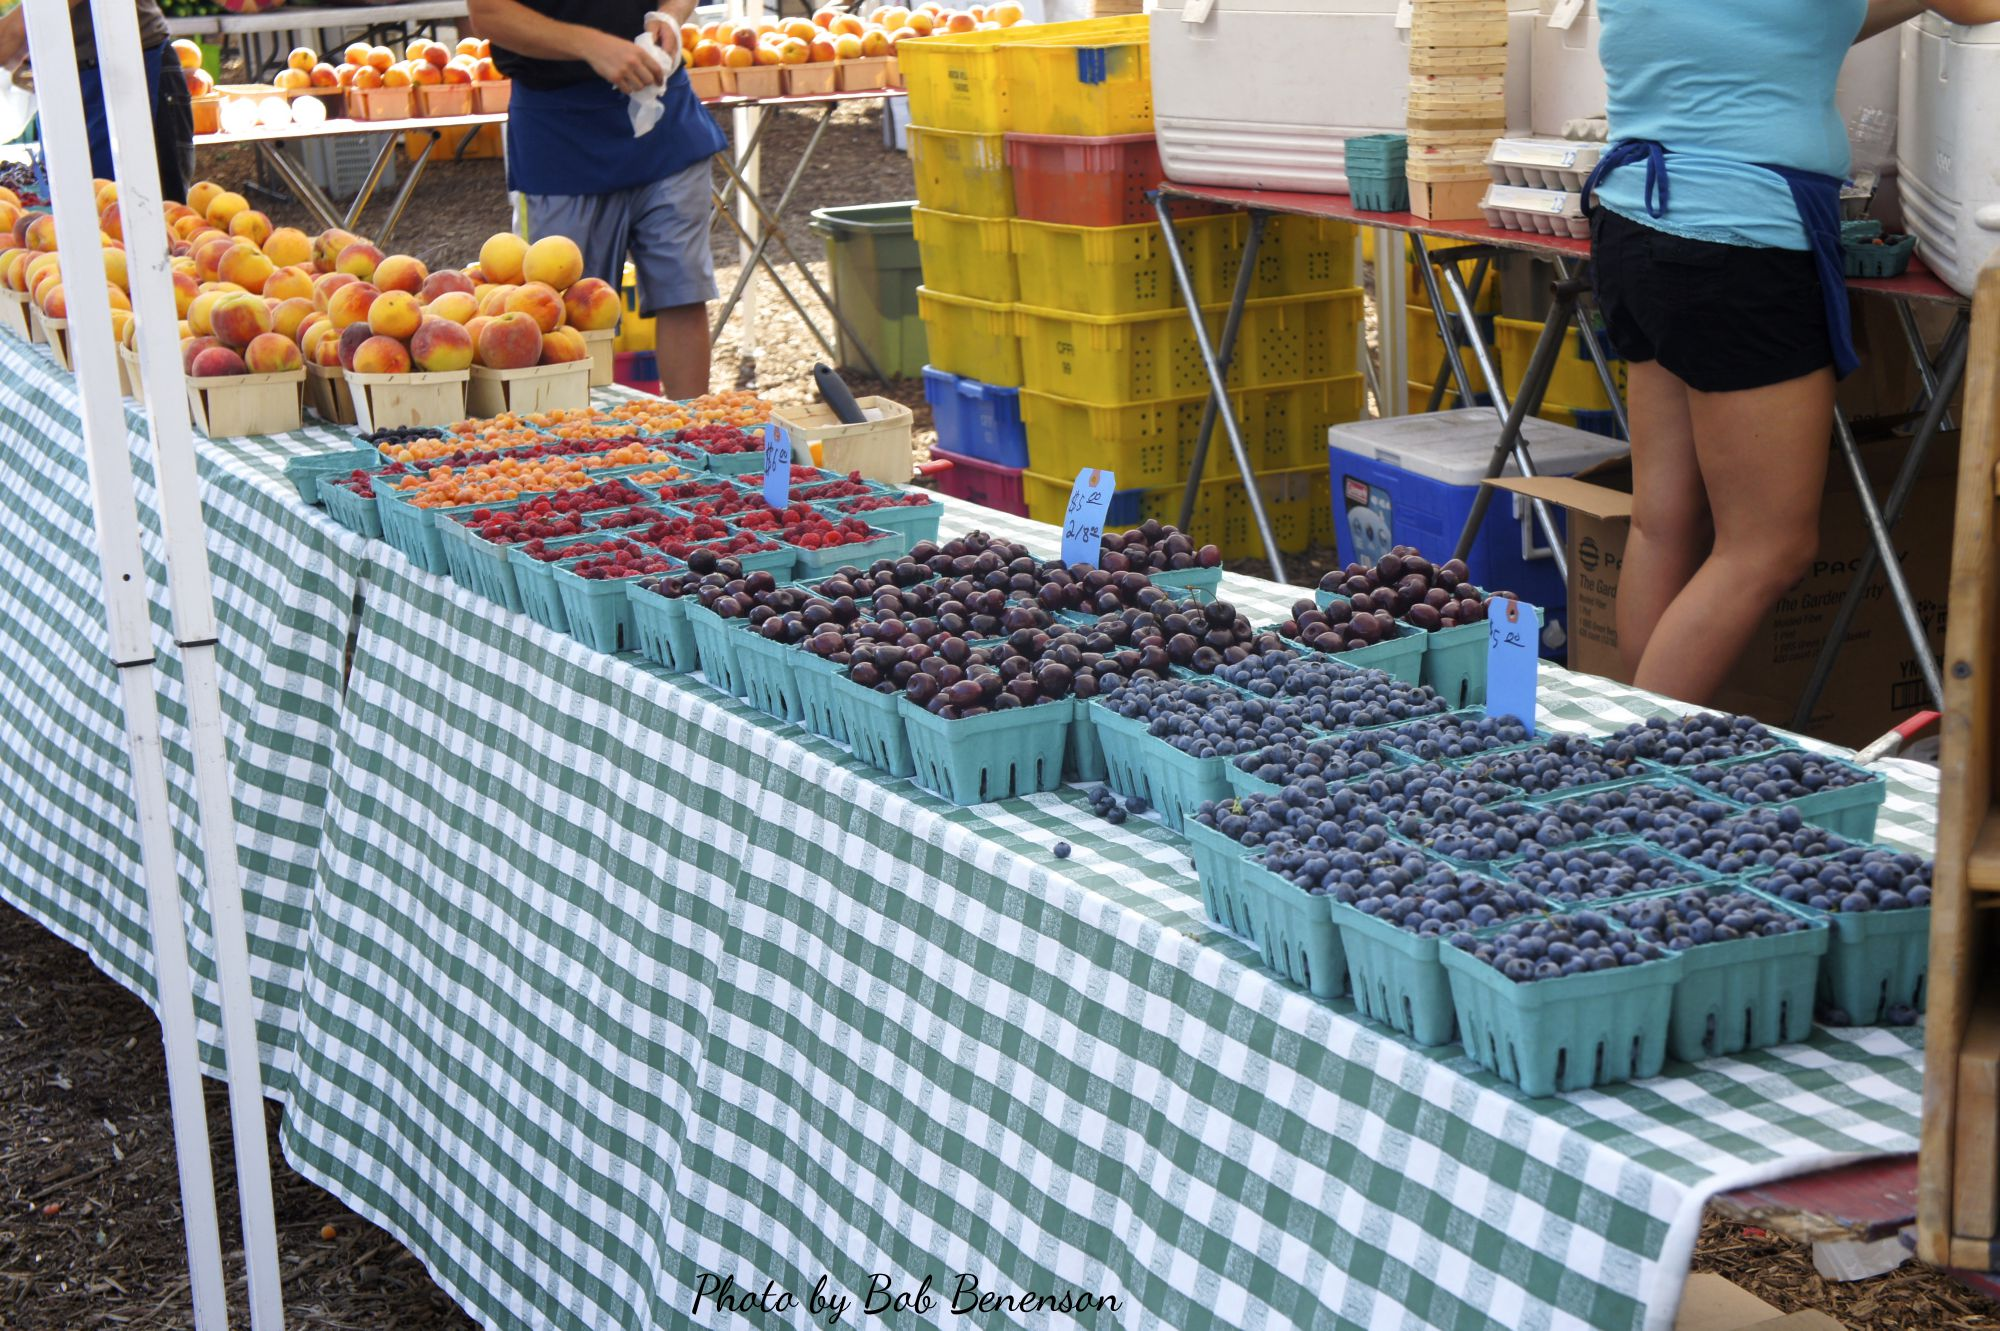 Fruit for sale at Chicago's Green City Market